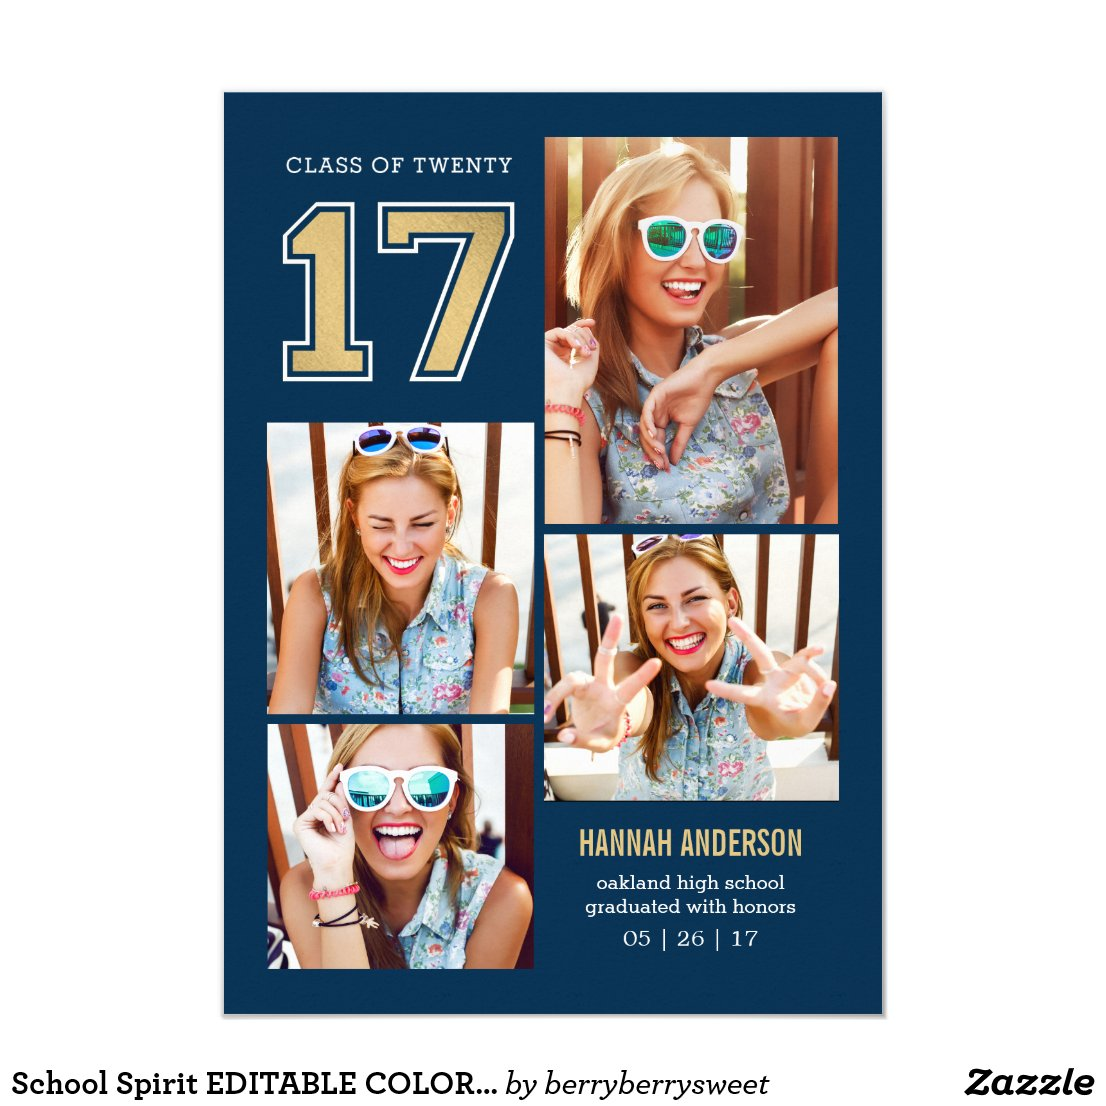 School Spirit EDITABLE COLOR Graduation Invitation